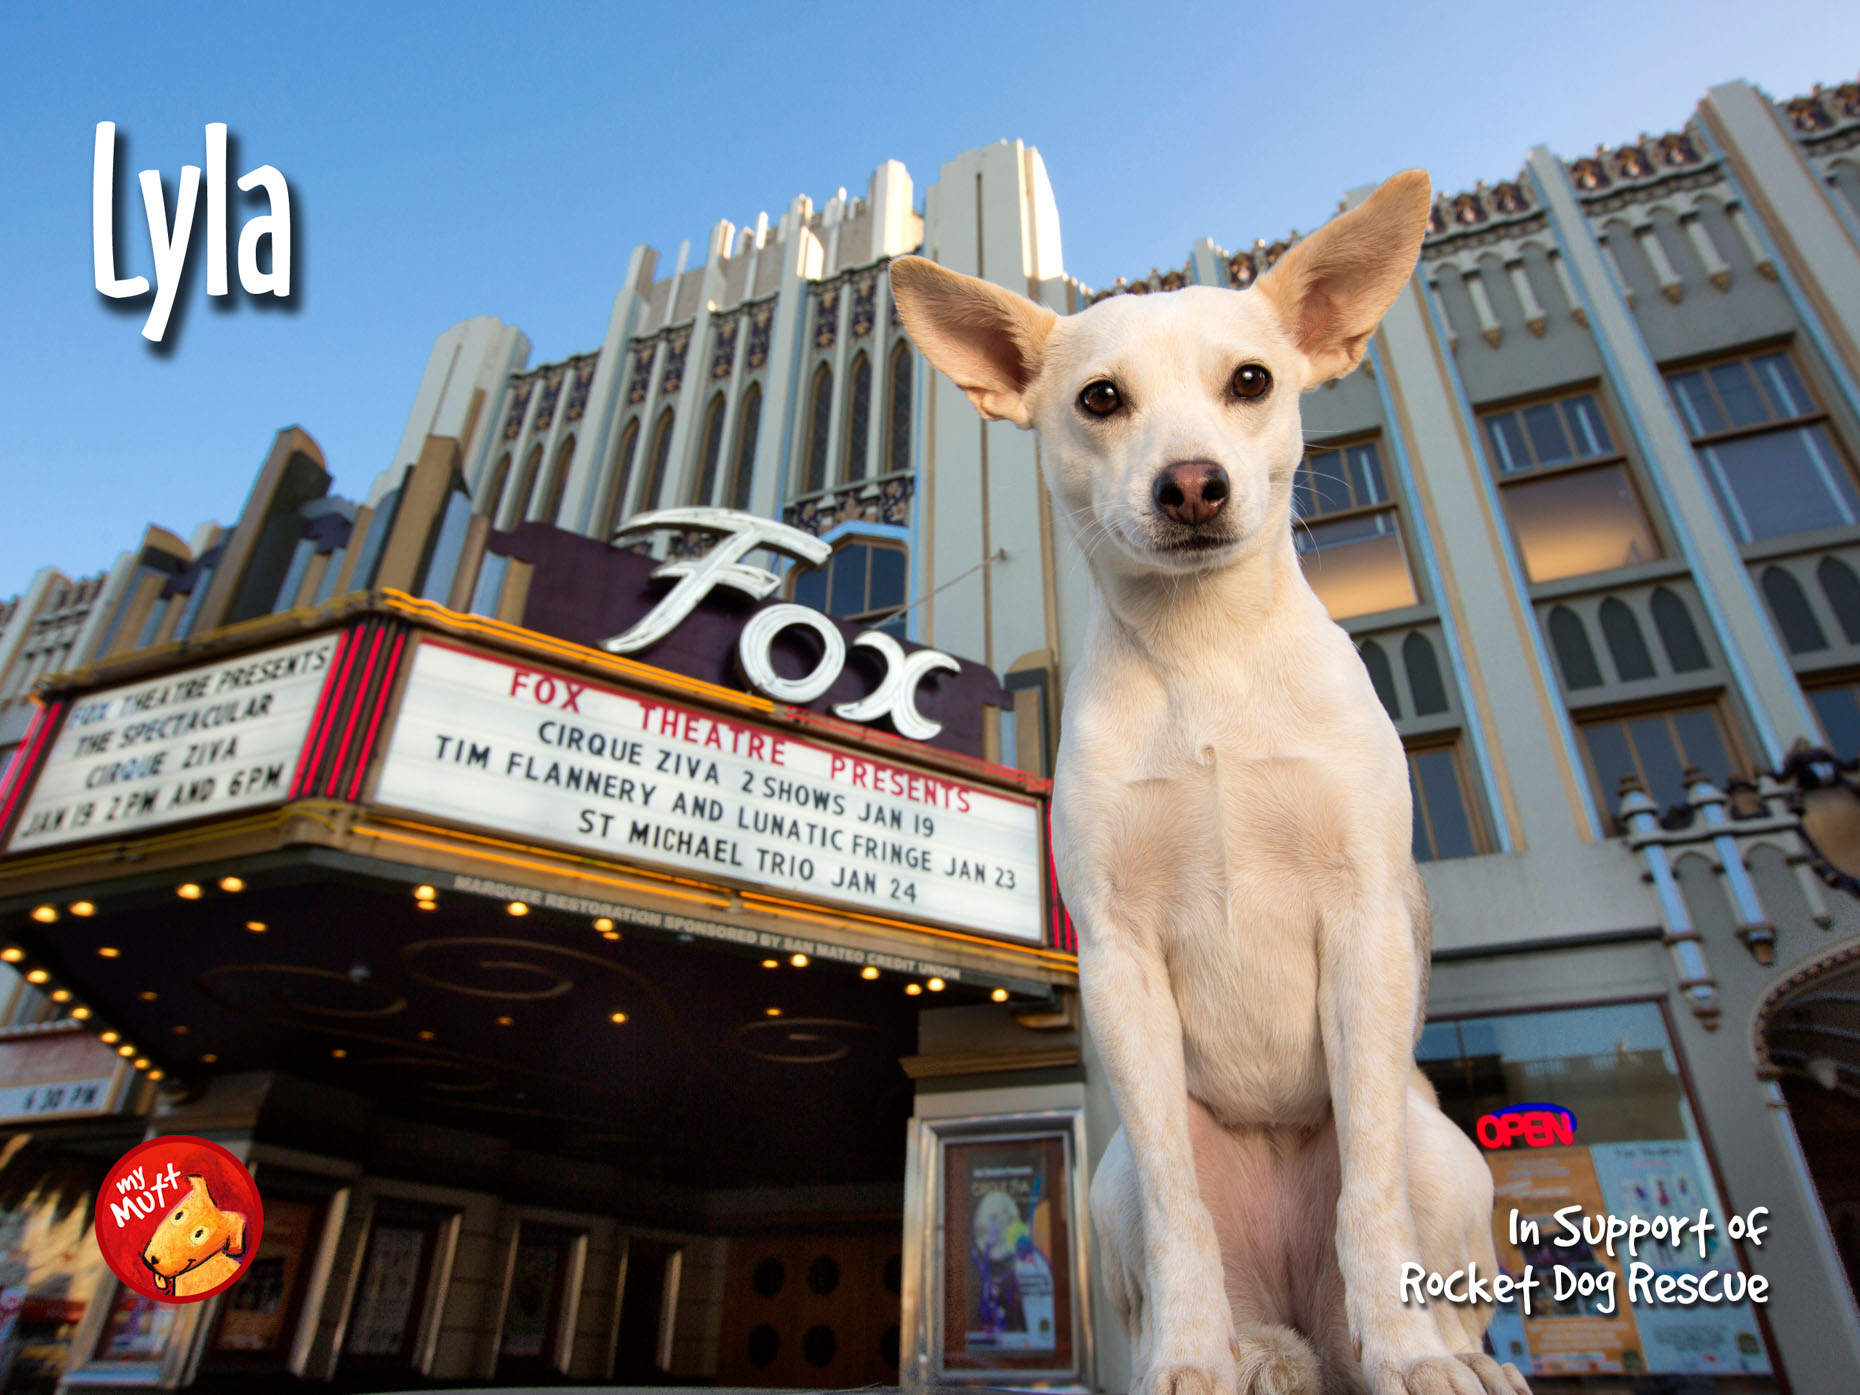 My Mutt Dog Rescue Poster | Chihuahua Dog and Theater Marquee by Mark Rogers